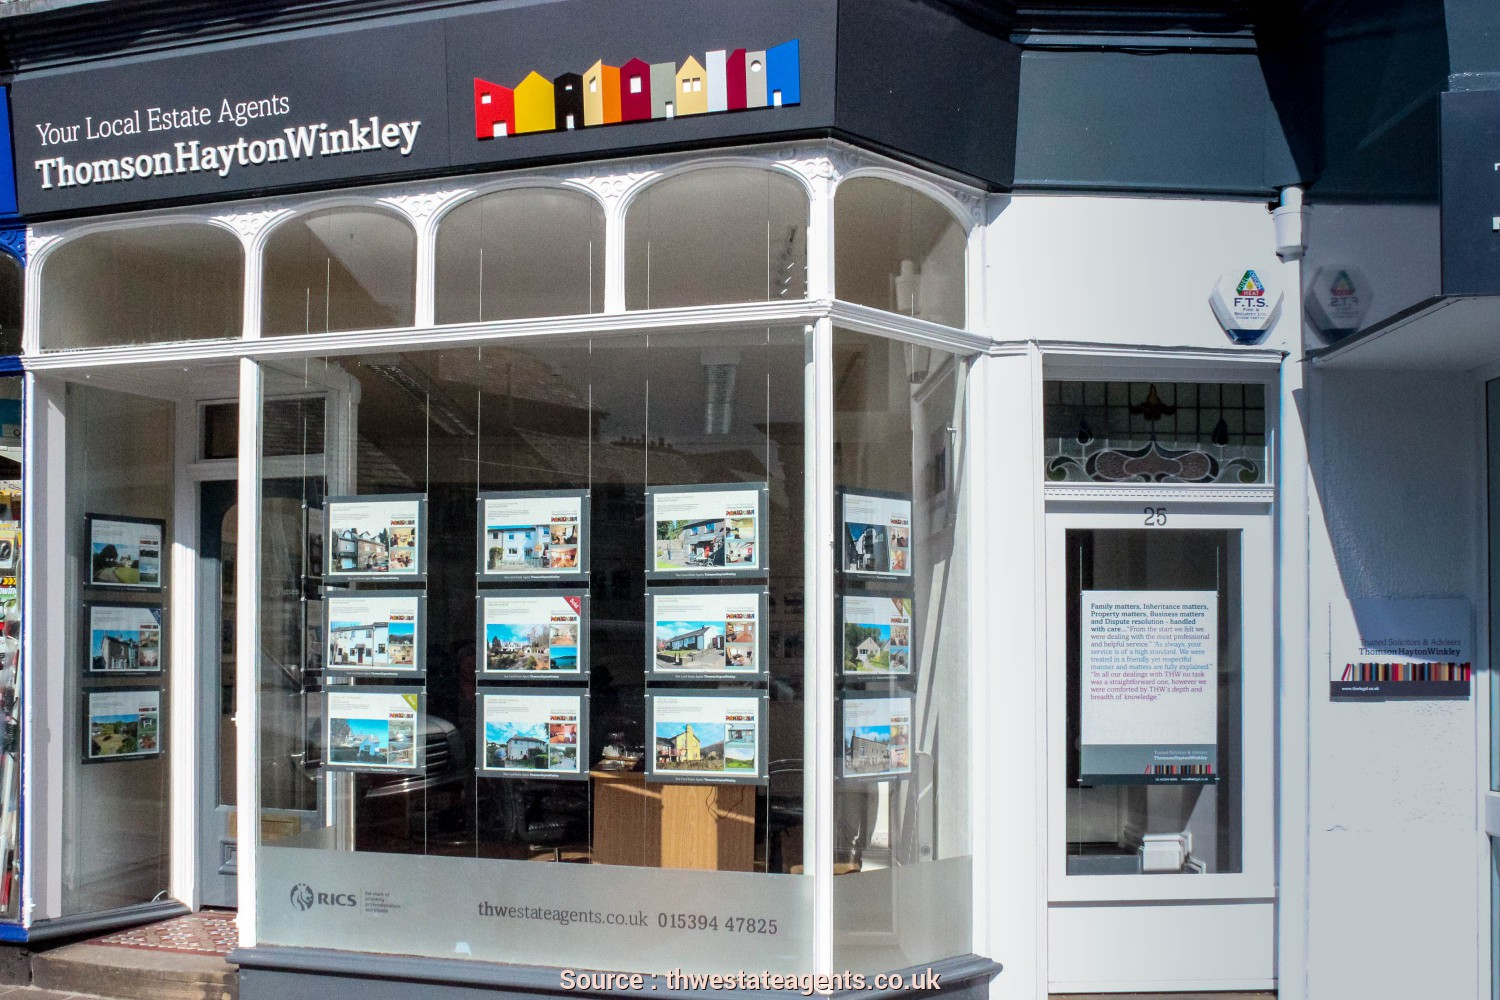 9 Molteni Lettings, A Buon Mercato Estate Agents In Kendal, Windermere, Grange-Over-Sands, Sales And